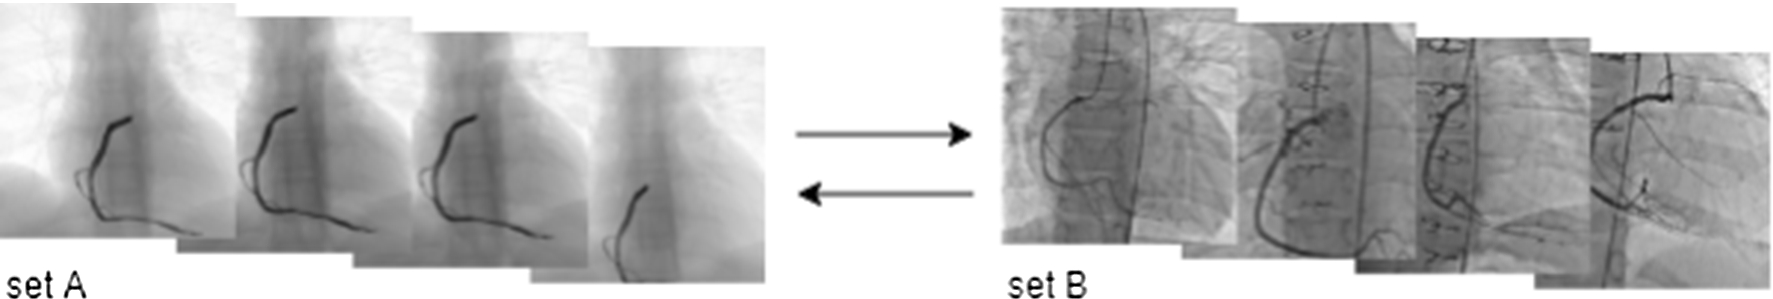 CycleGAN for style transfer in X-ray angiography | SpringerLink